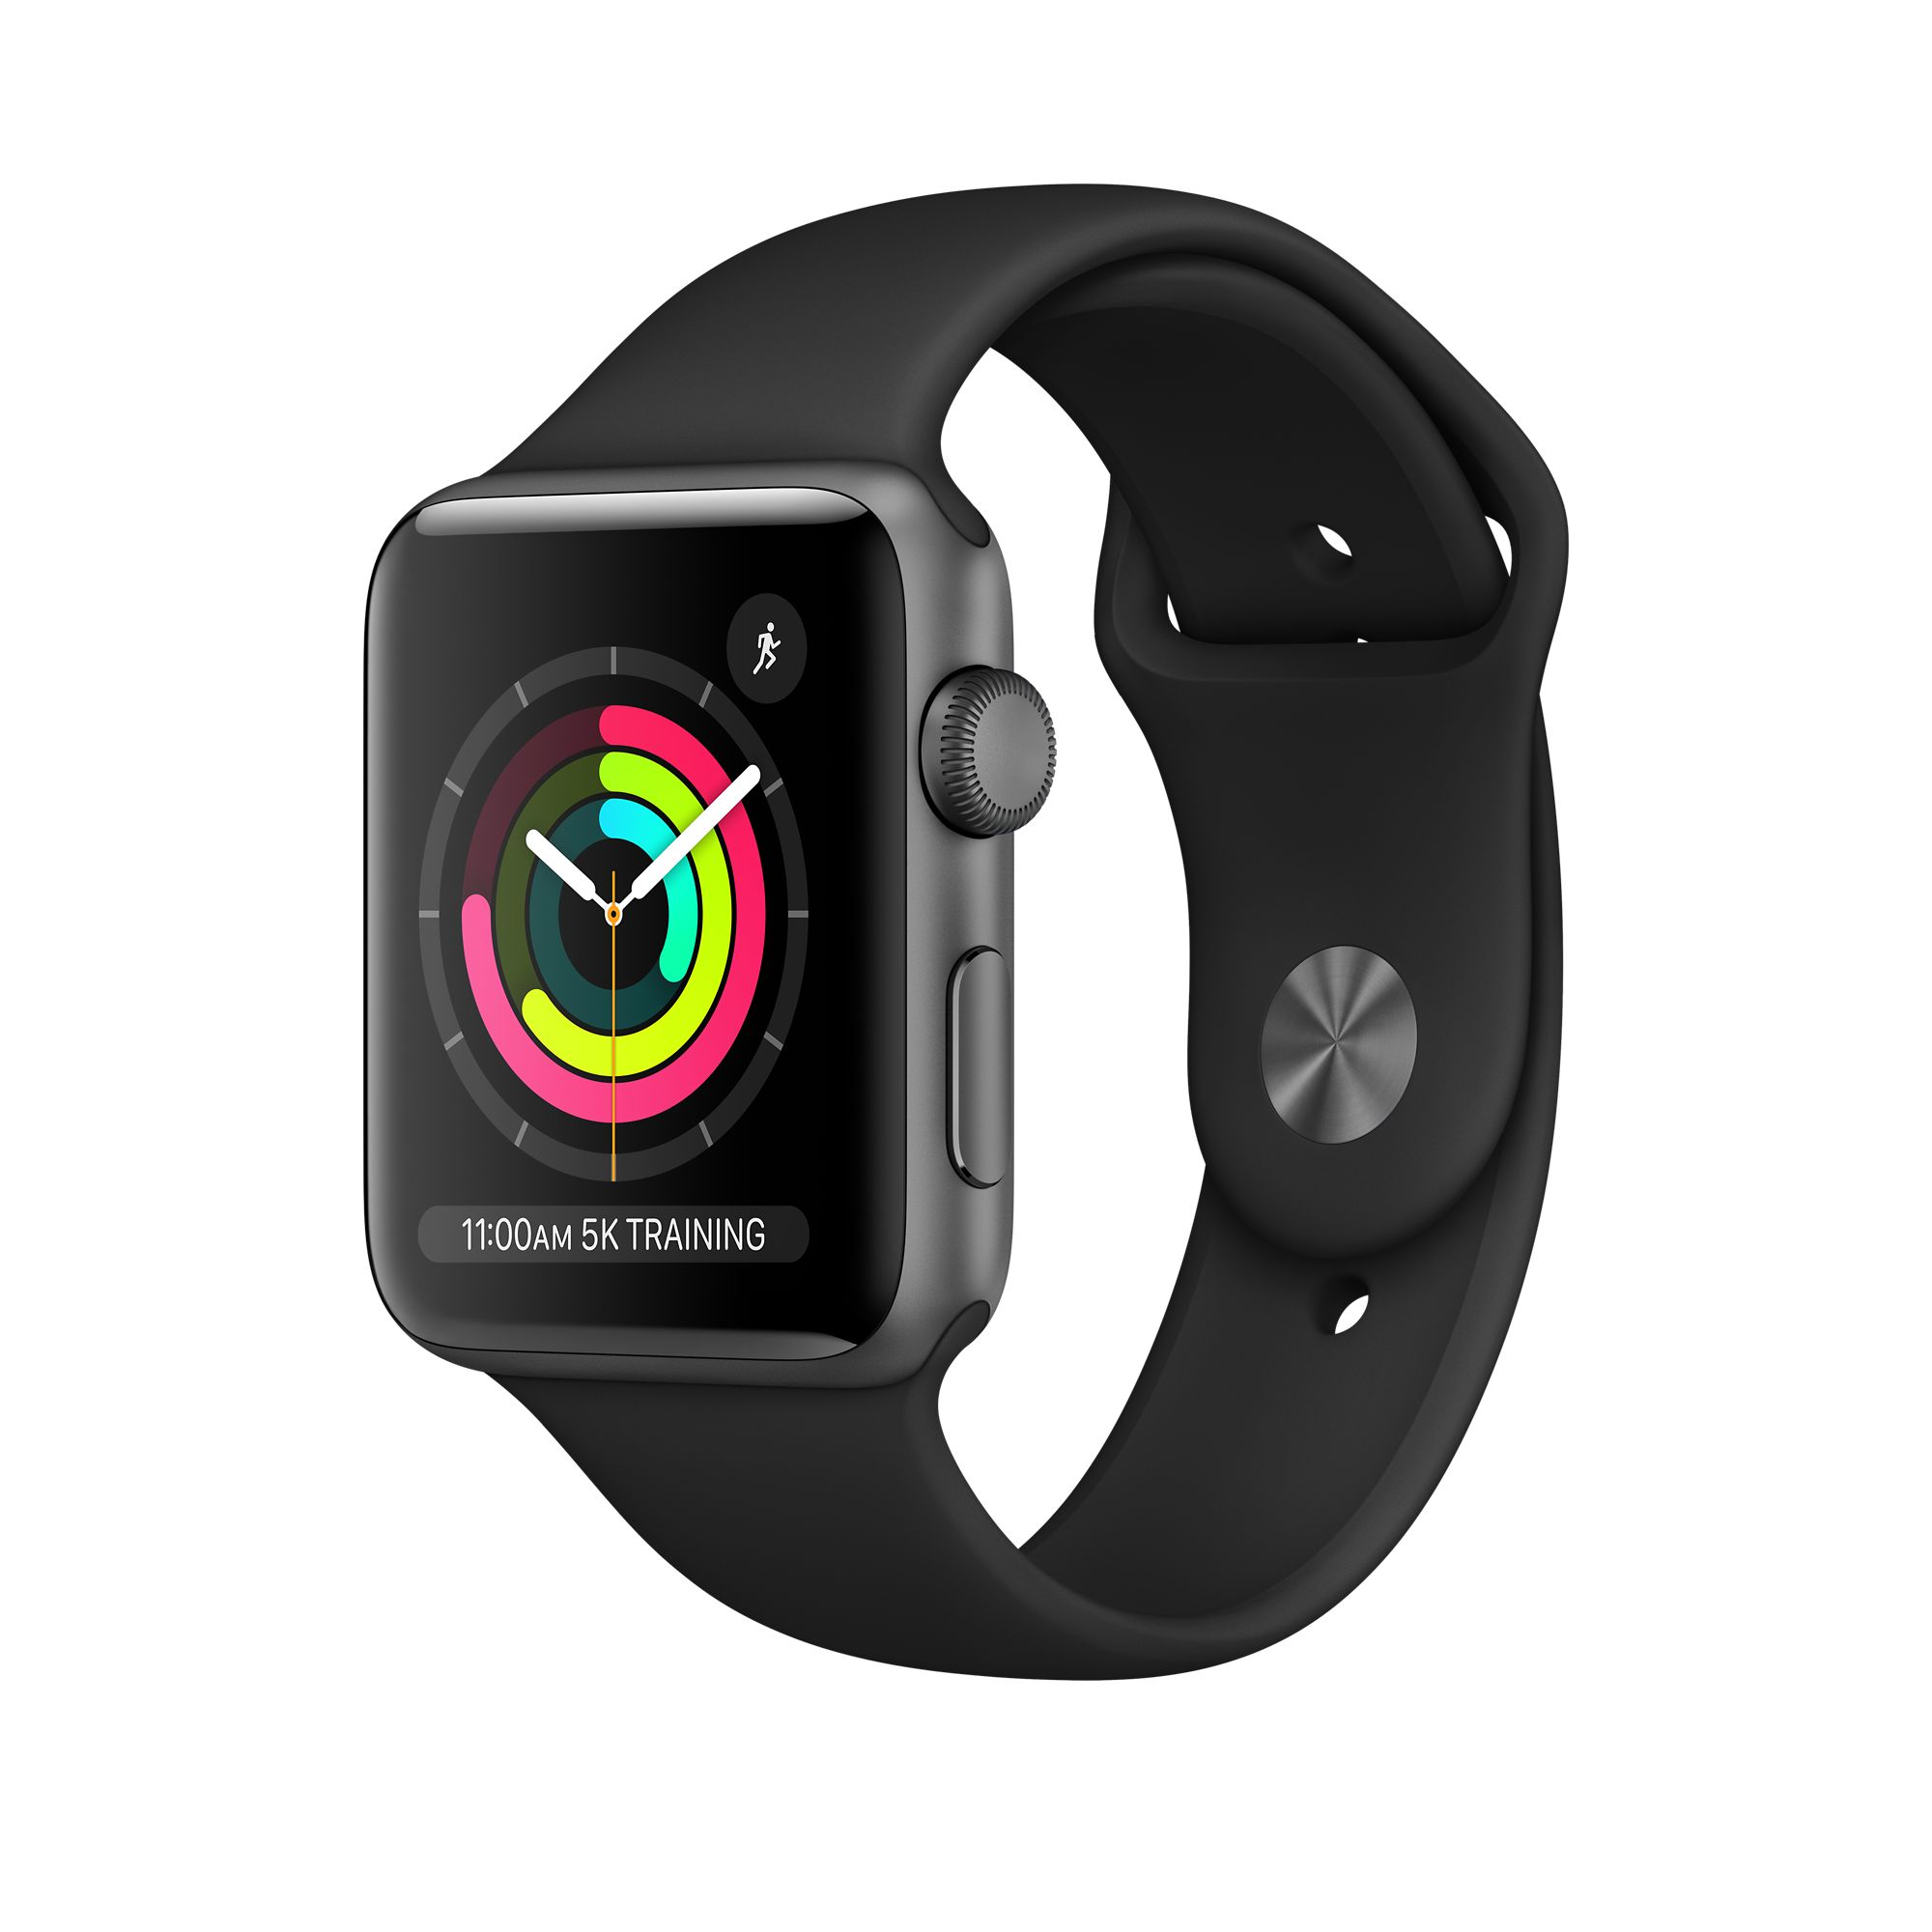 new styles 48496 83a13 Apple Watch Series 3 GPS, 38mm Space Gray Aluminum Case with Black Sport  Band